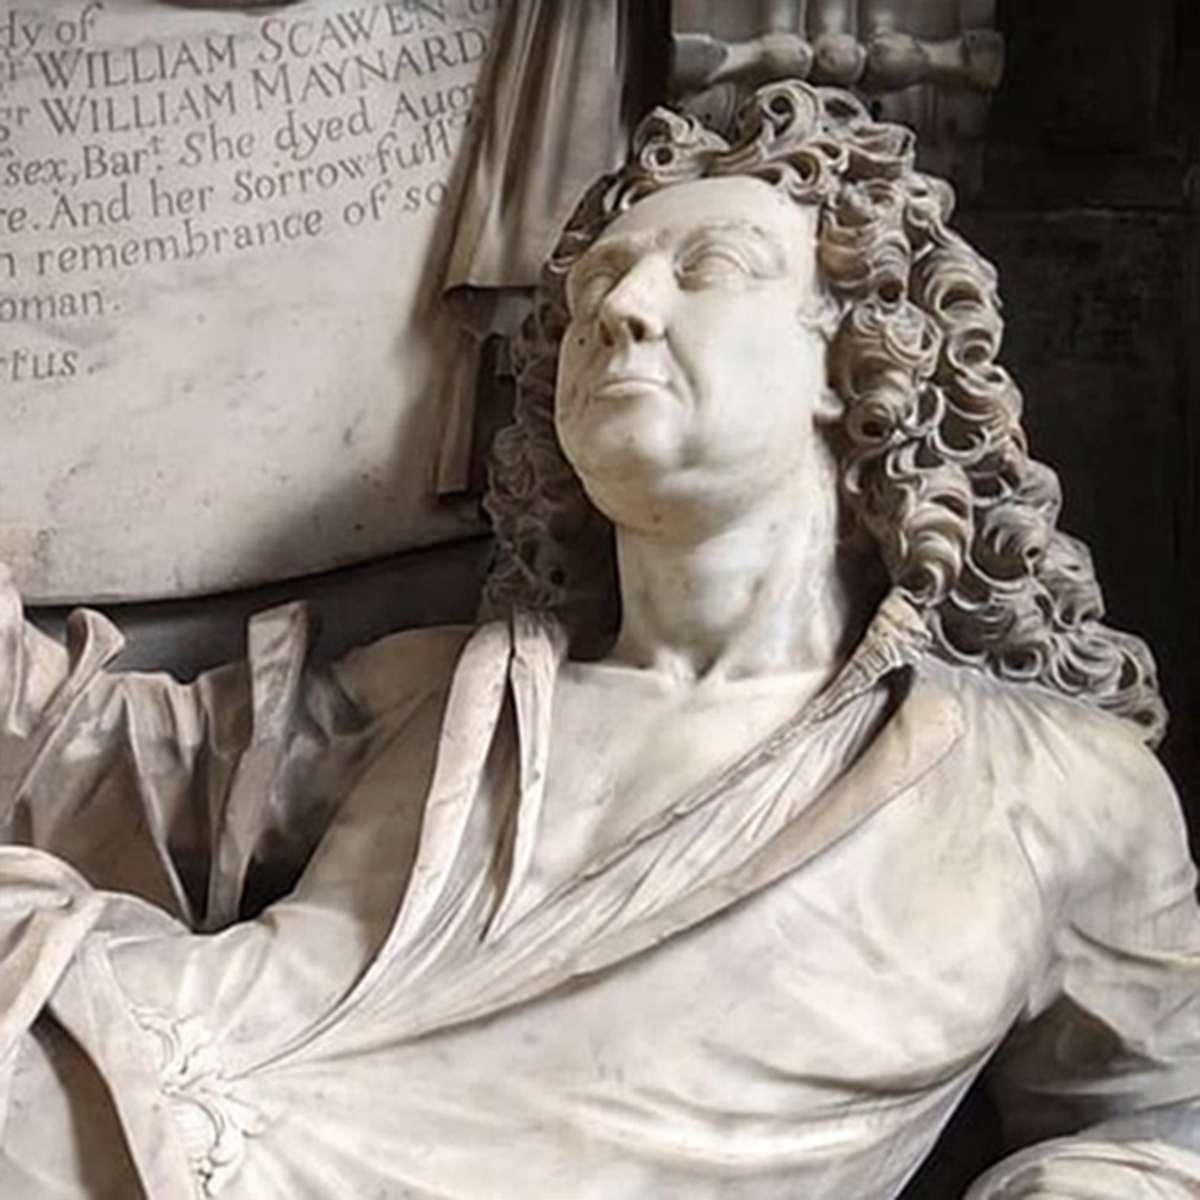 Bank Of England Governor, Sir William Scawen Has An Ornate Memorial At All Saints Carshalton